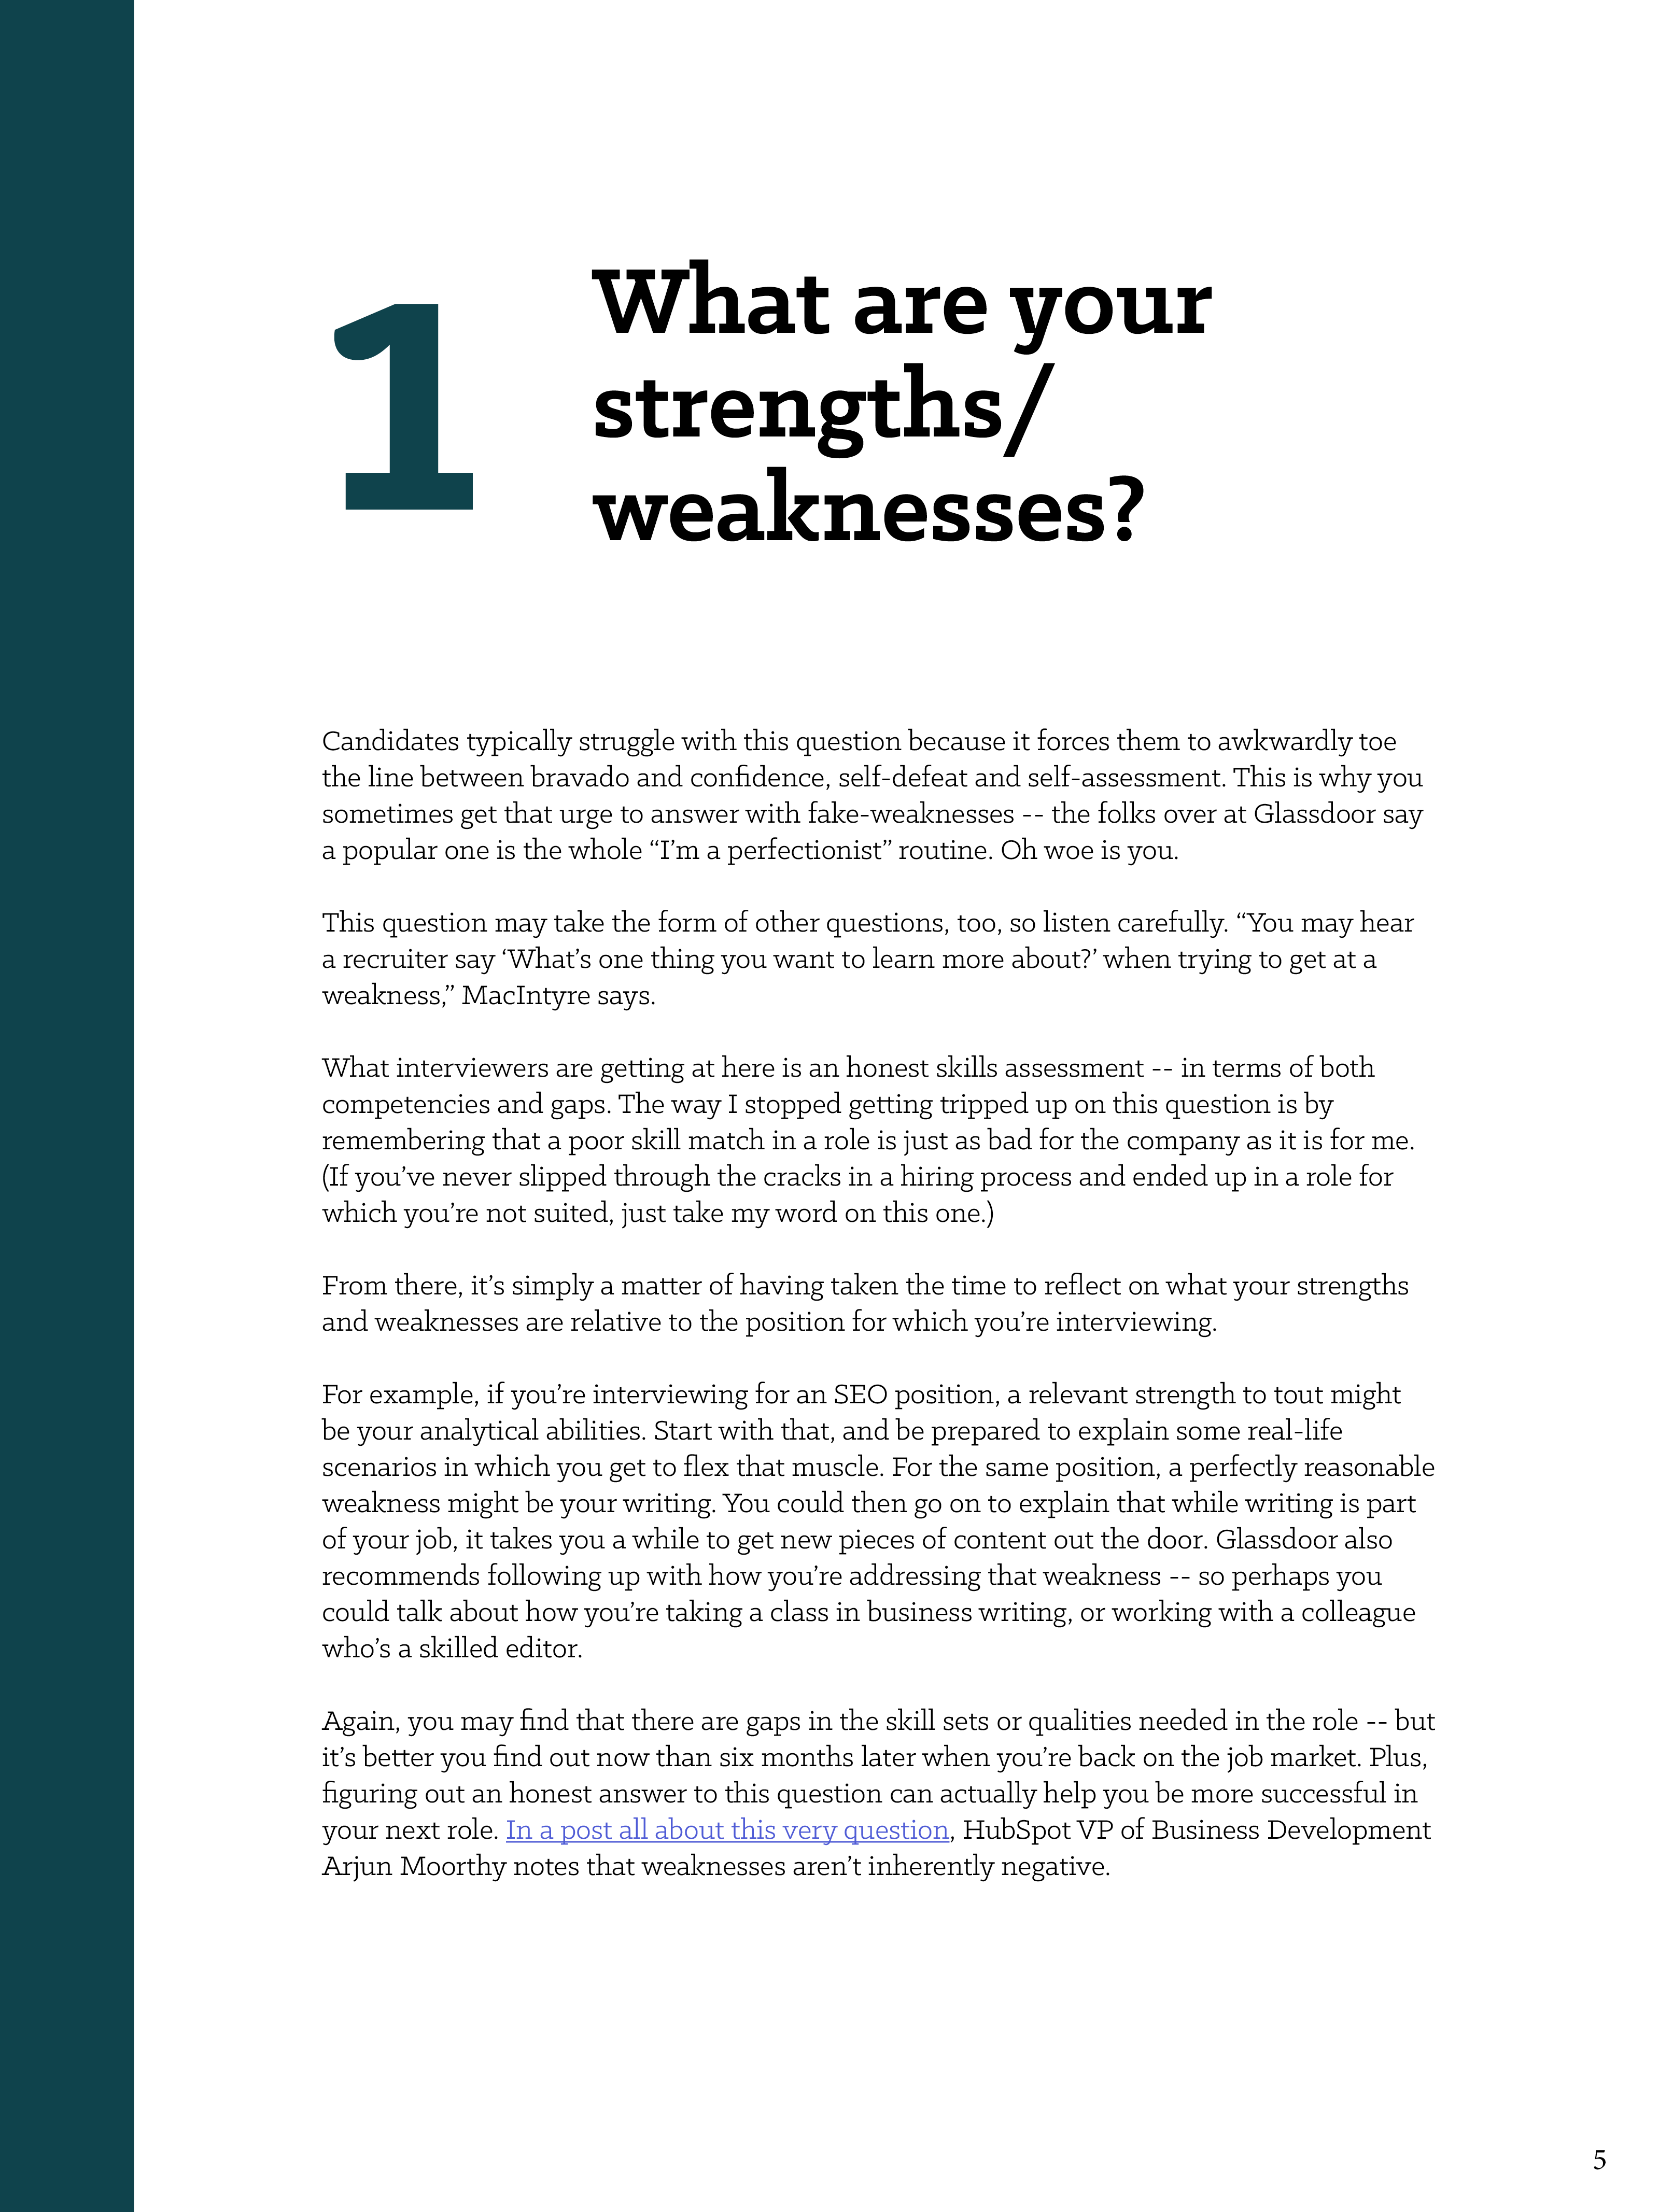 amazing strengths and weaknesses job interview customer service